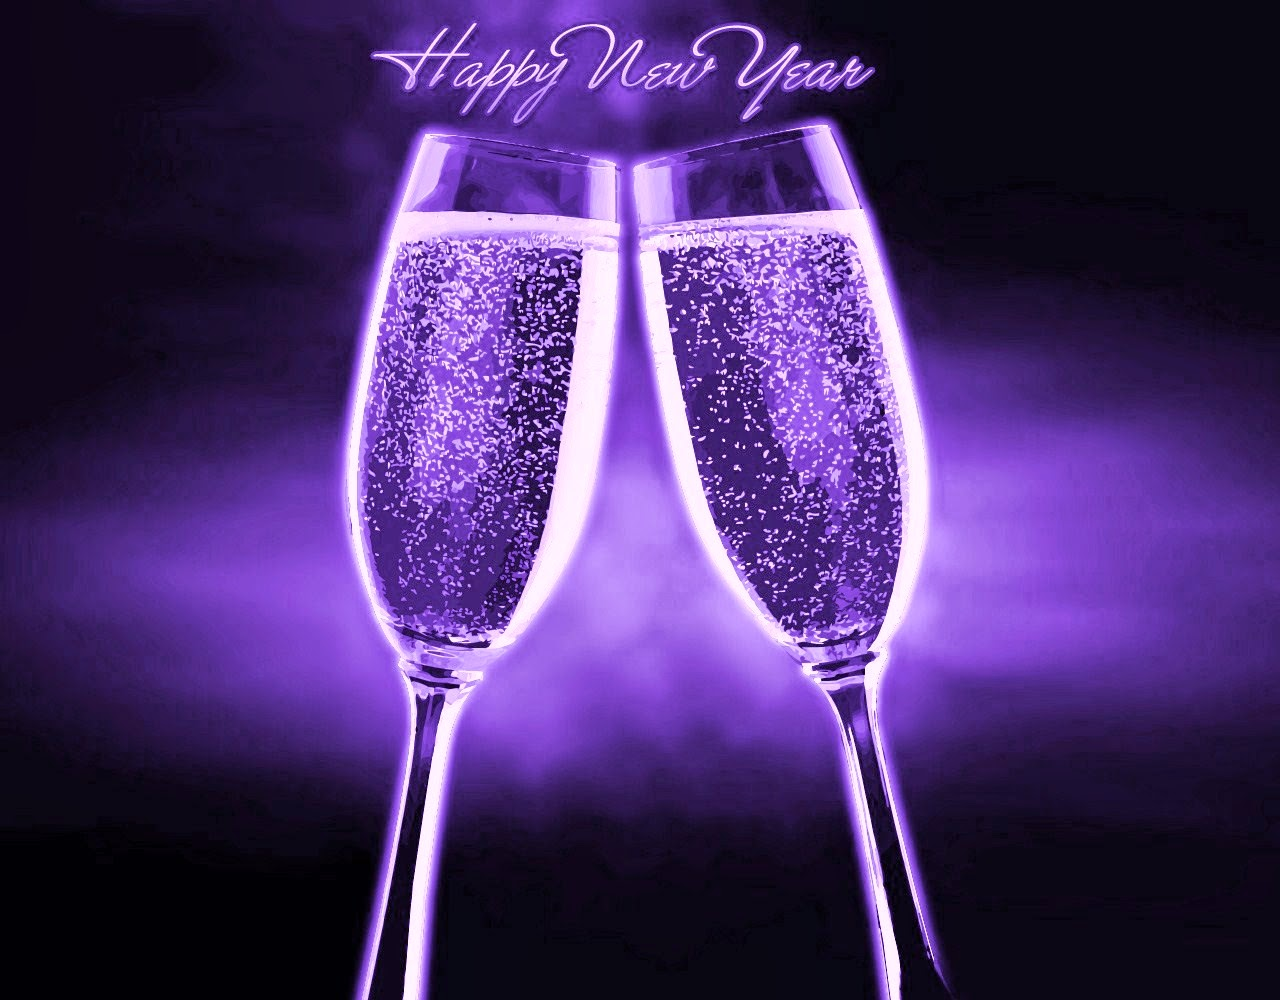 HAPPY NEW YEAR 2015, new year, 2015, new year message, happy new year messages, new year quotes, new year text quotes,  New year image, new year logo, New year pictures